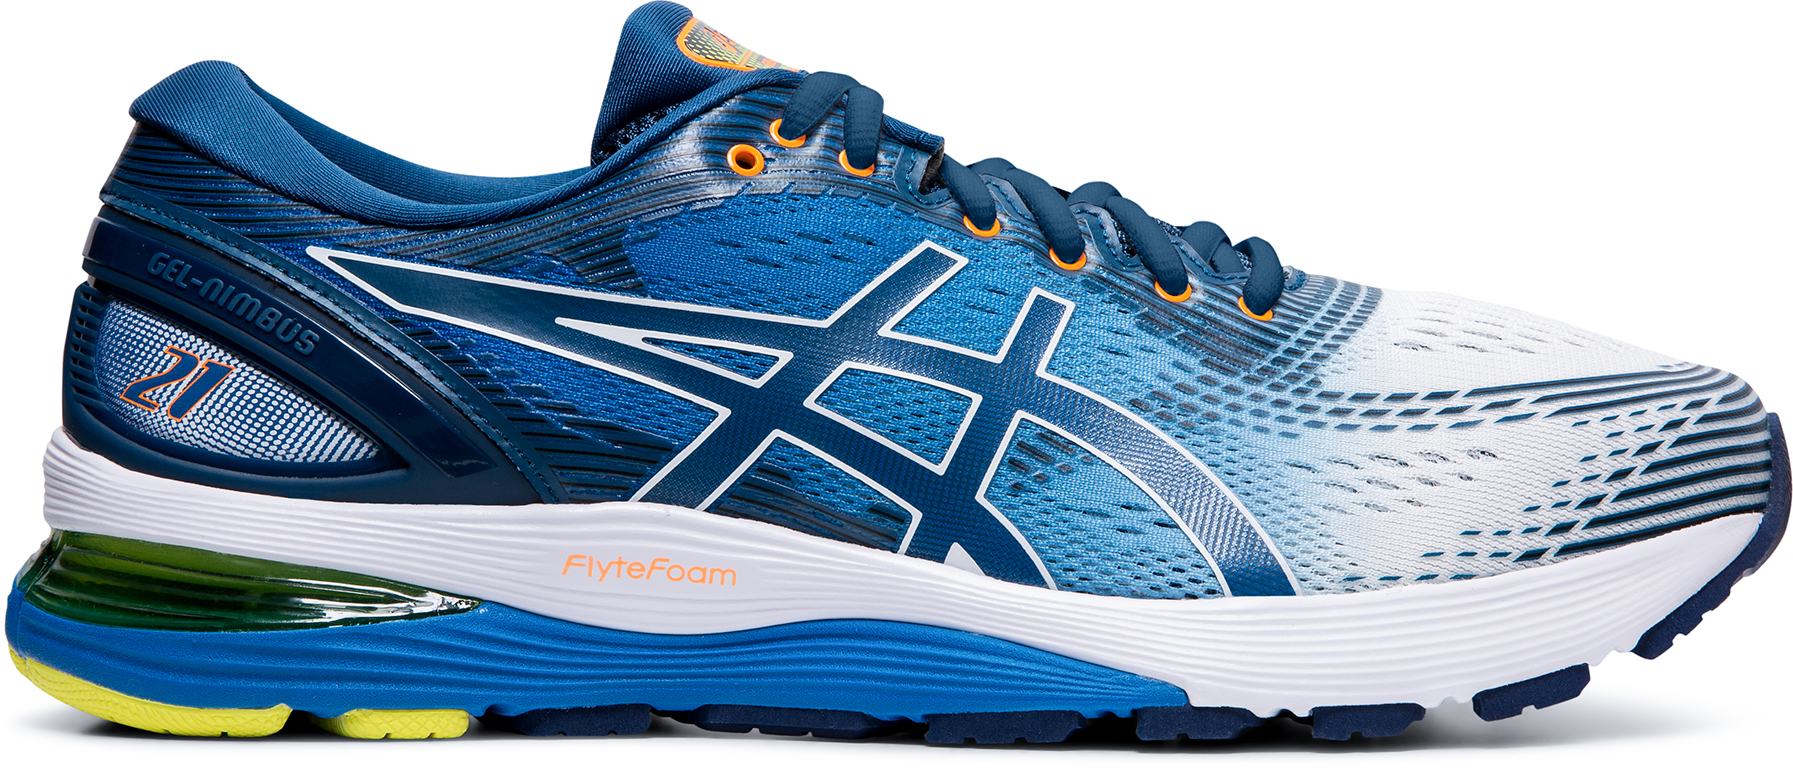 Asics Gel Nimbus 21 Running Shoes (Shine Pack)